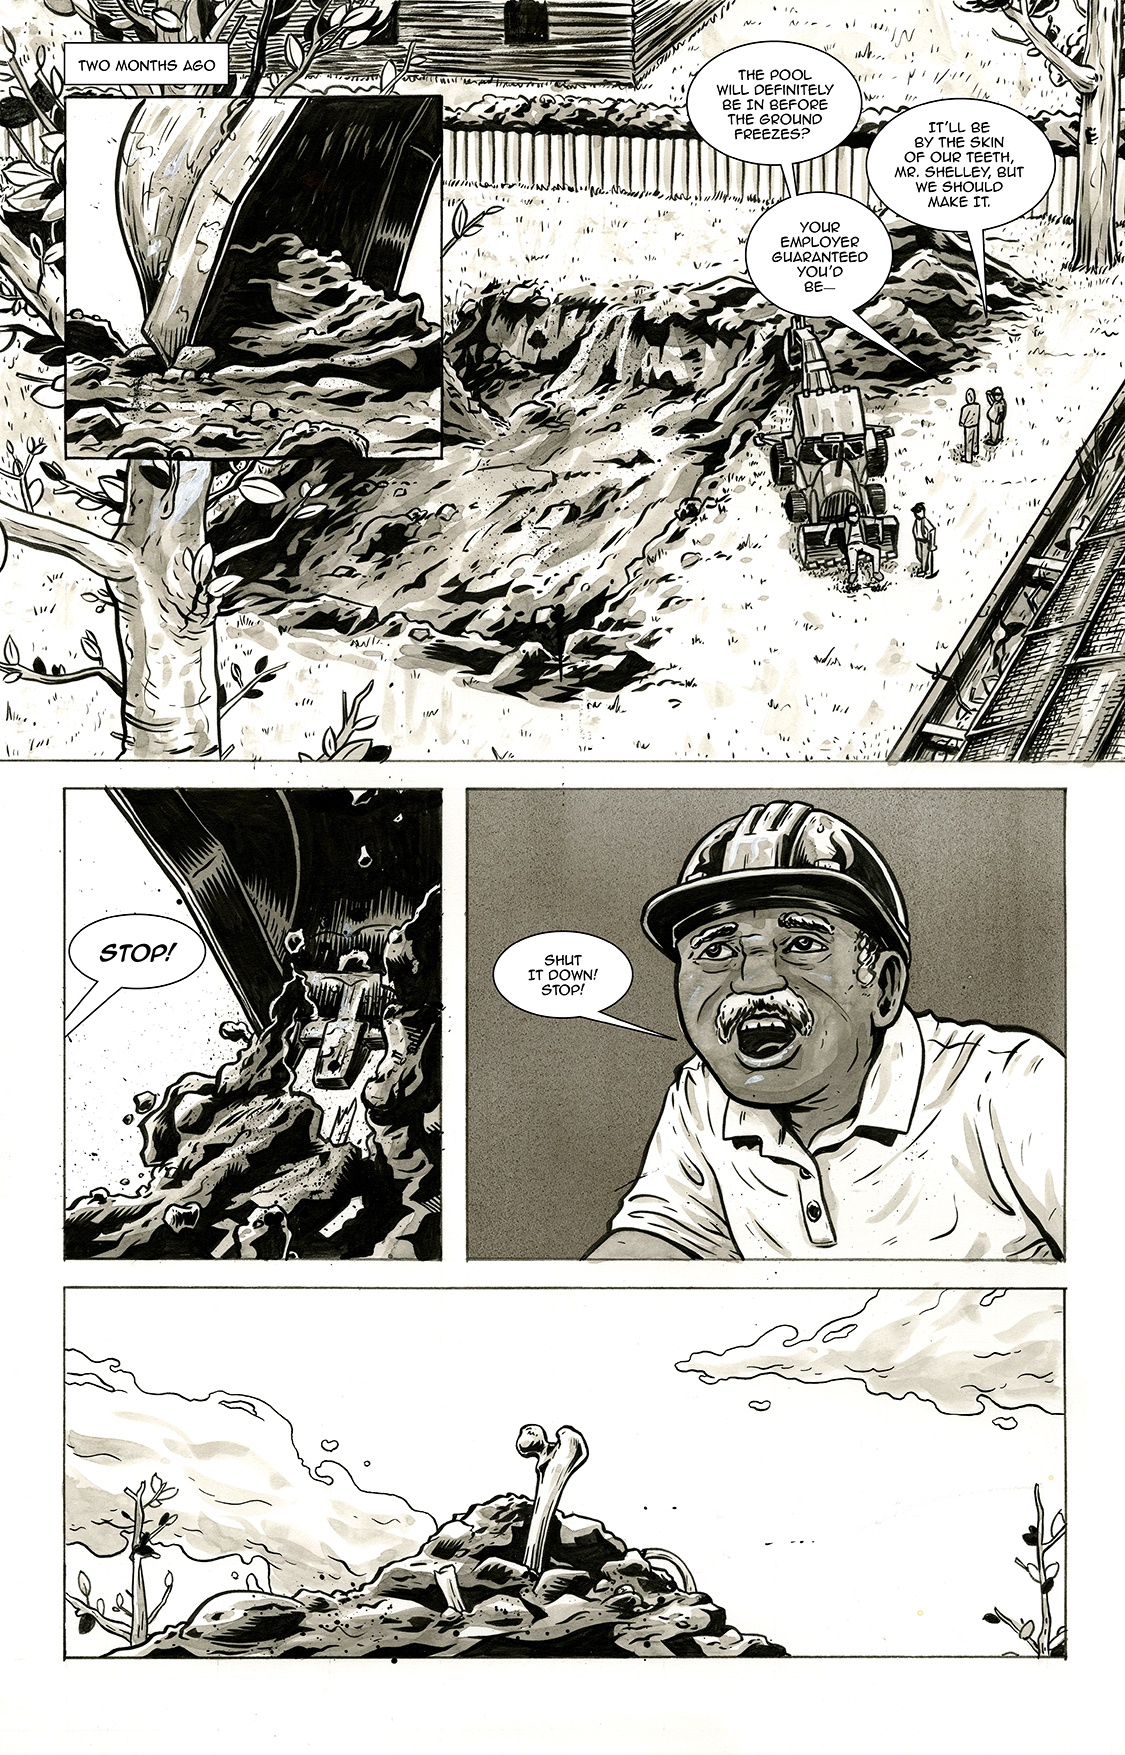 Lone and Level, page 2, by Sam Costello and Max Temescu